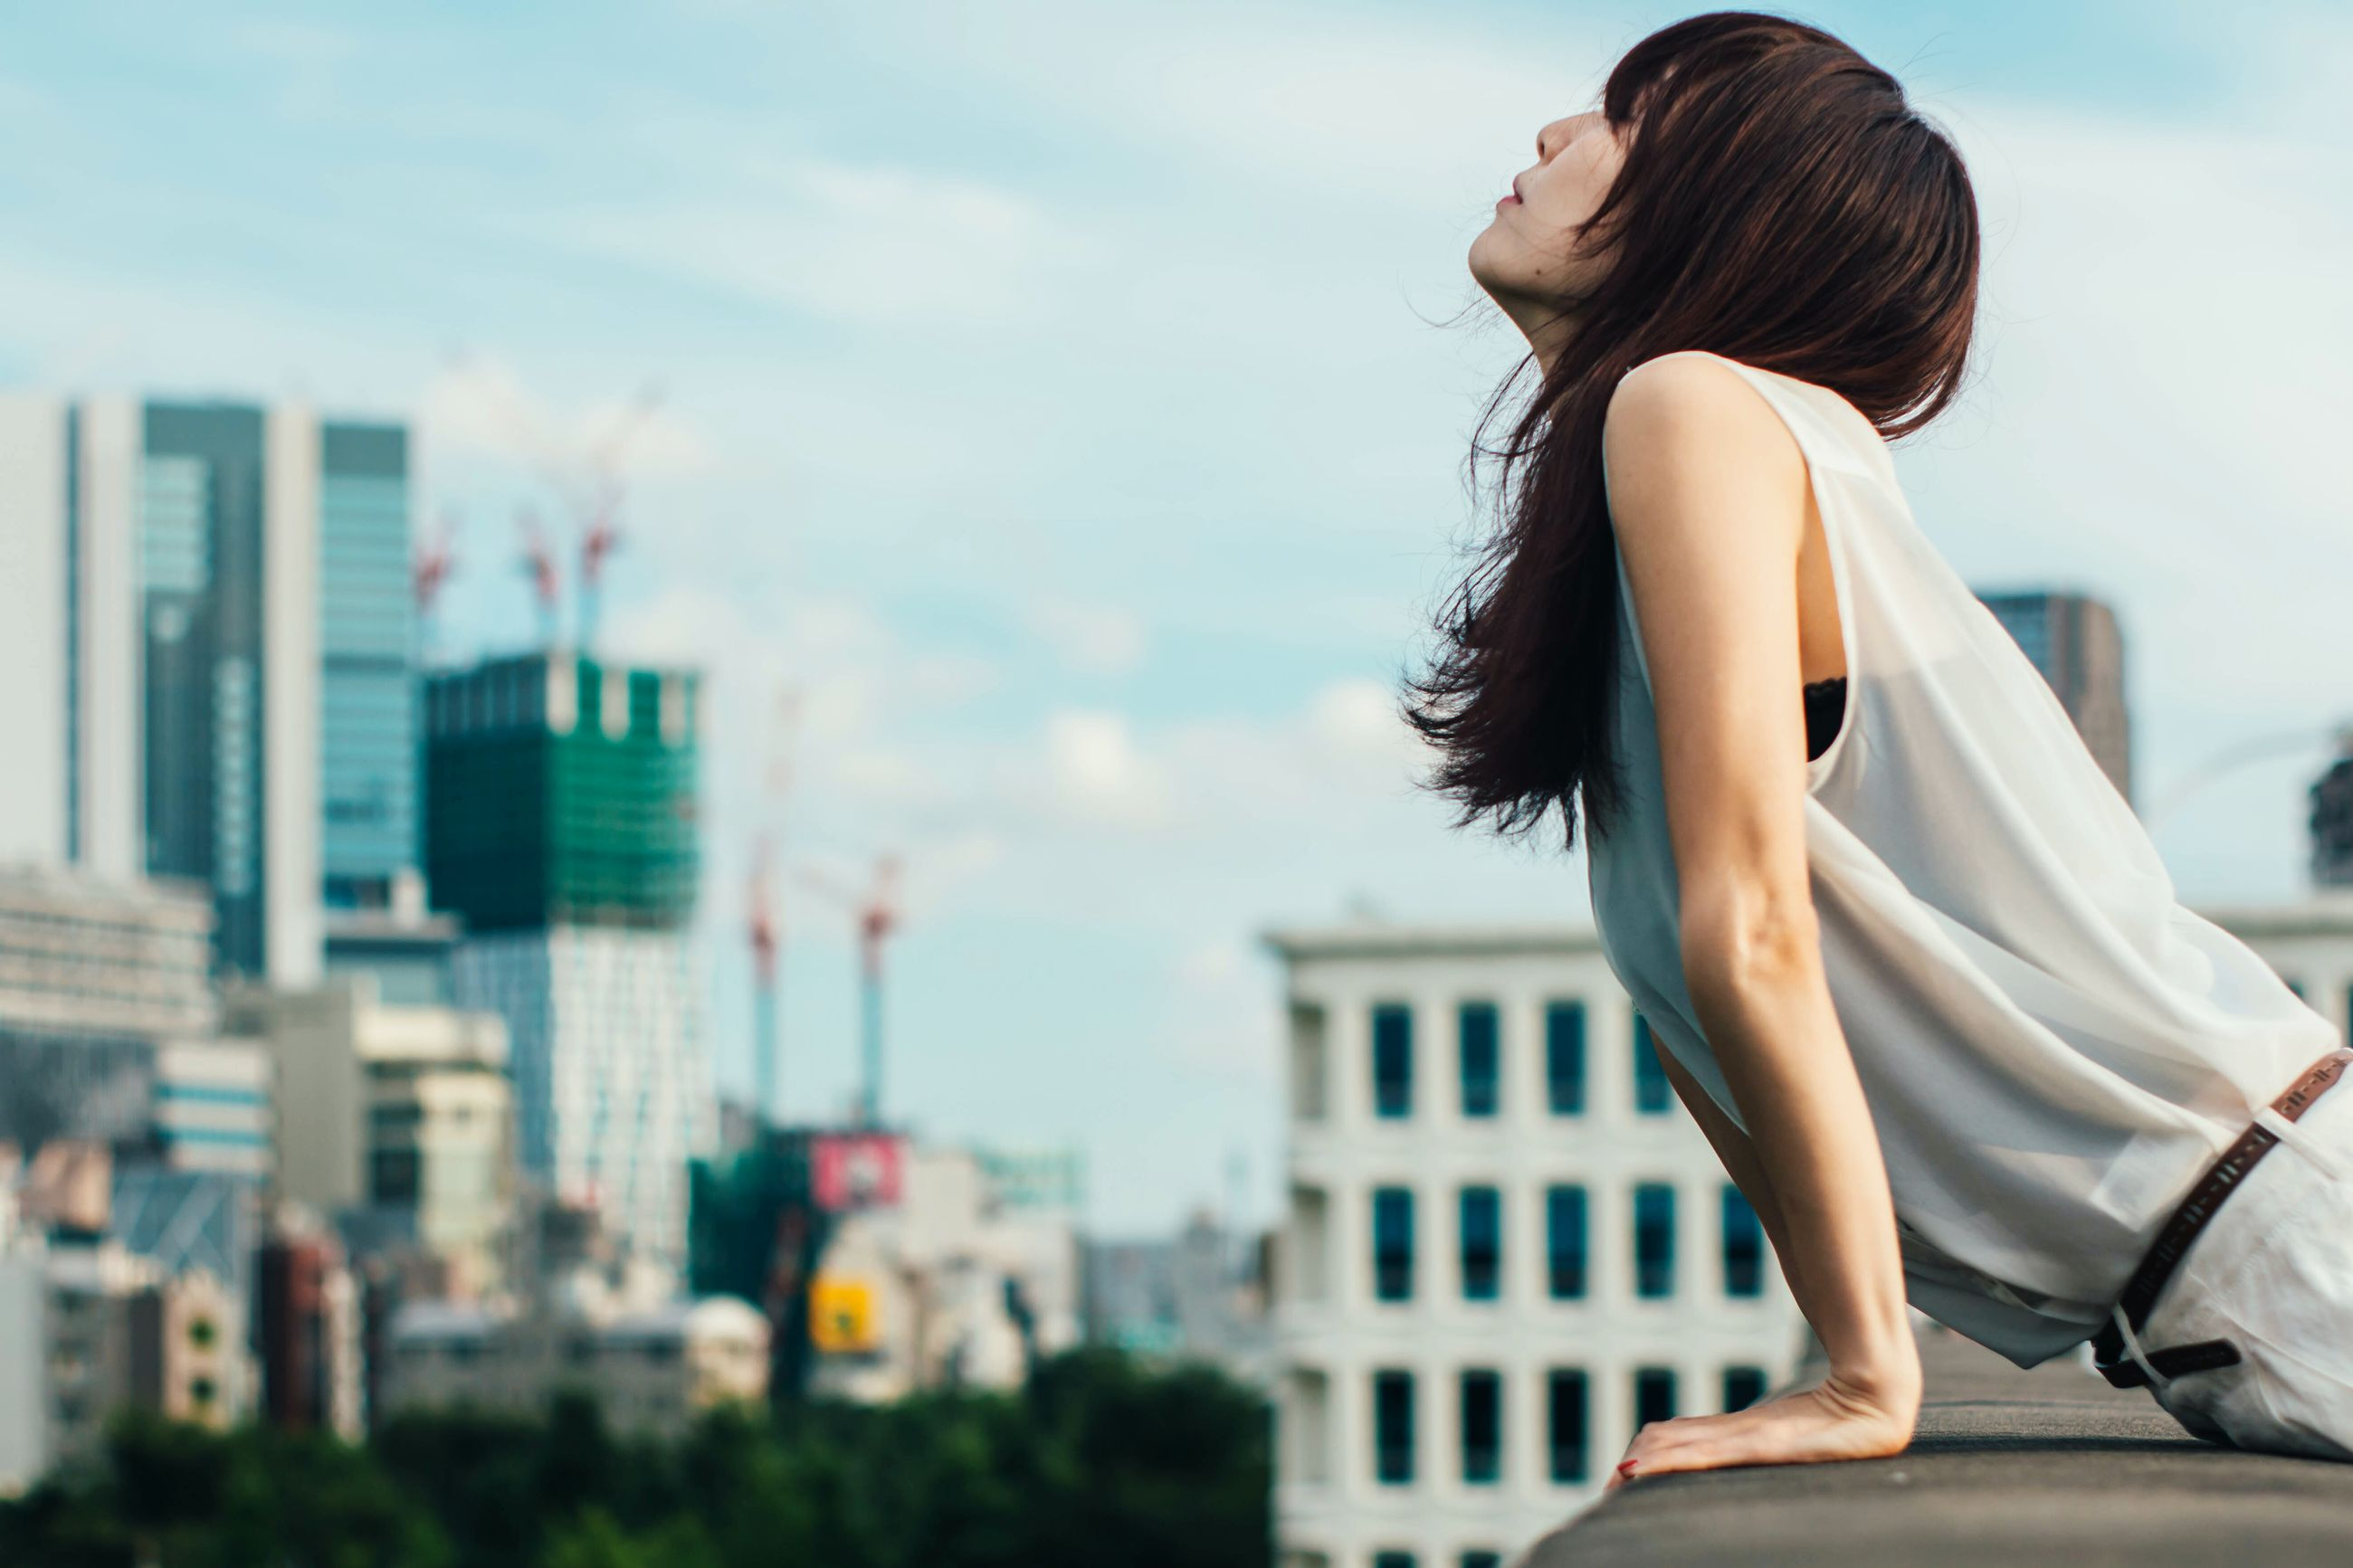 one person, real people, outdoors, building exterior, leisure activity, sky, architecture, young adult, side view, day, built structure, focus on foreground, young women, women, city, people